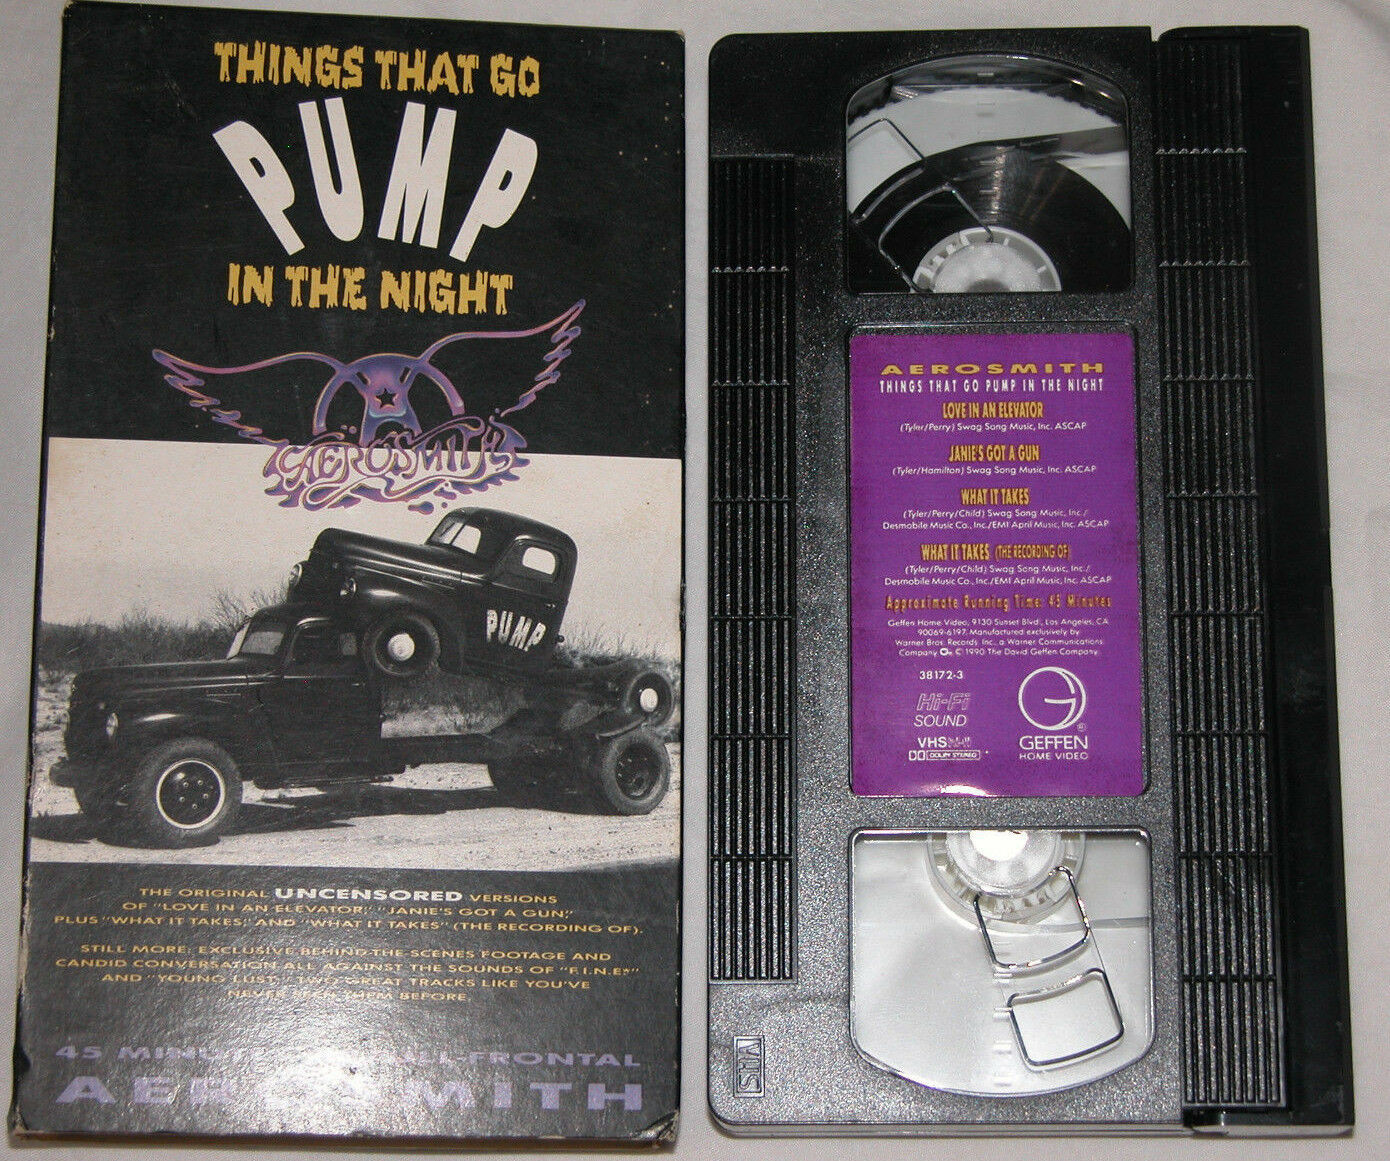 Primary image for Aerosmith Things che Go Pompa in The Night VHS 1990 Original Uncensored Versioni